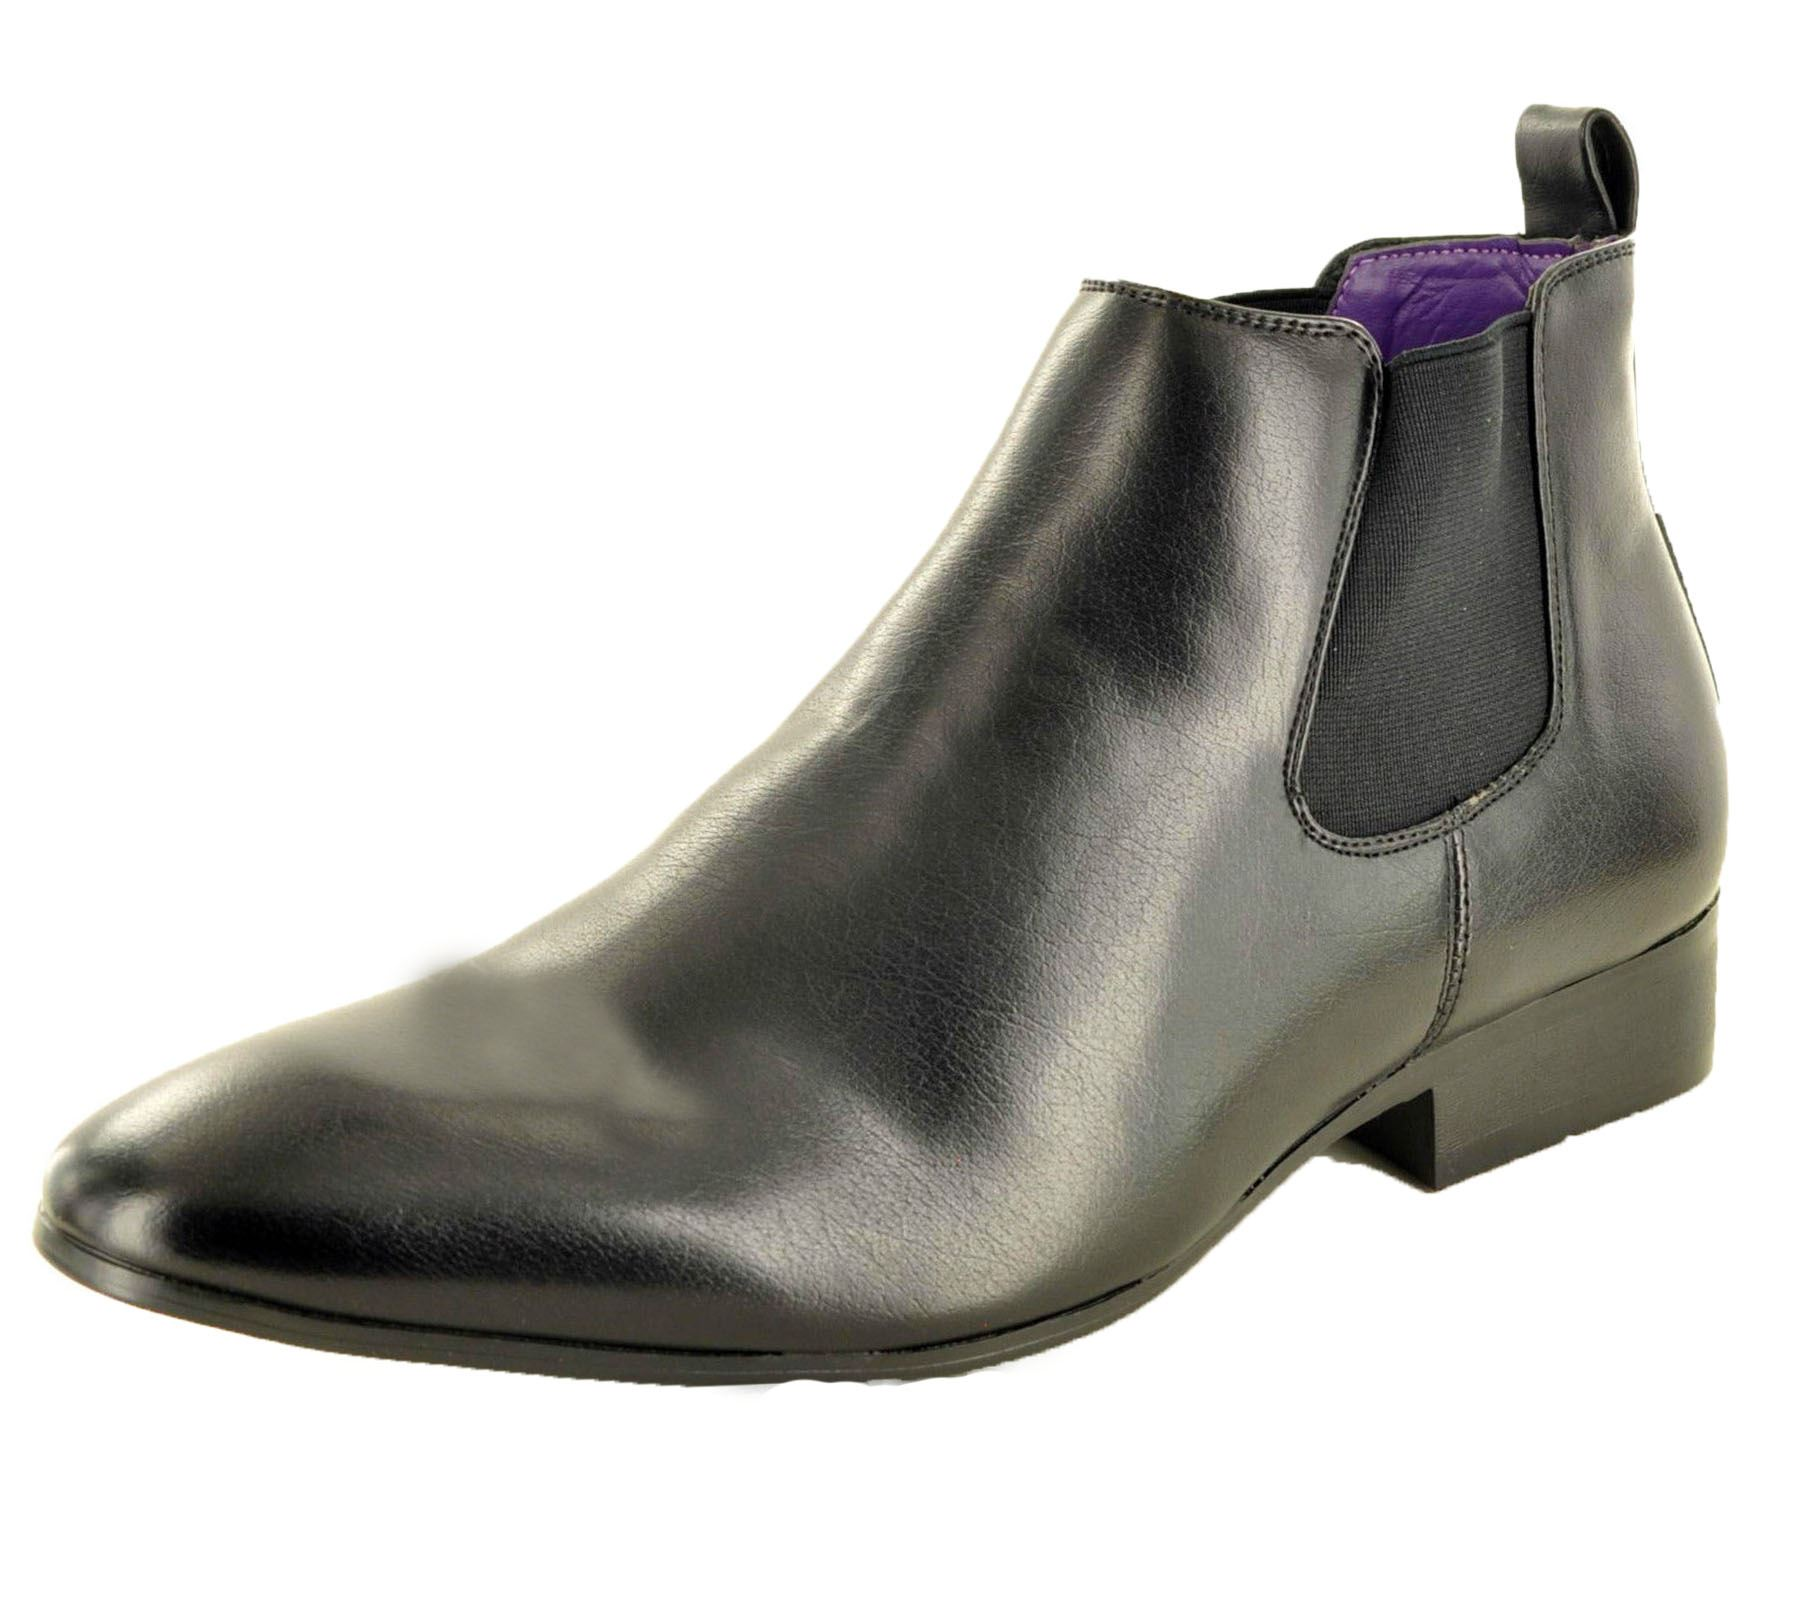 Mens-Chelsea-Boots-High-Top-Gusset-Synthetic-Leather-Shoes thumbnail 5